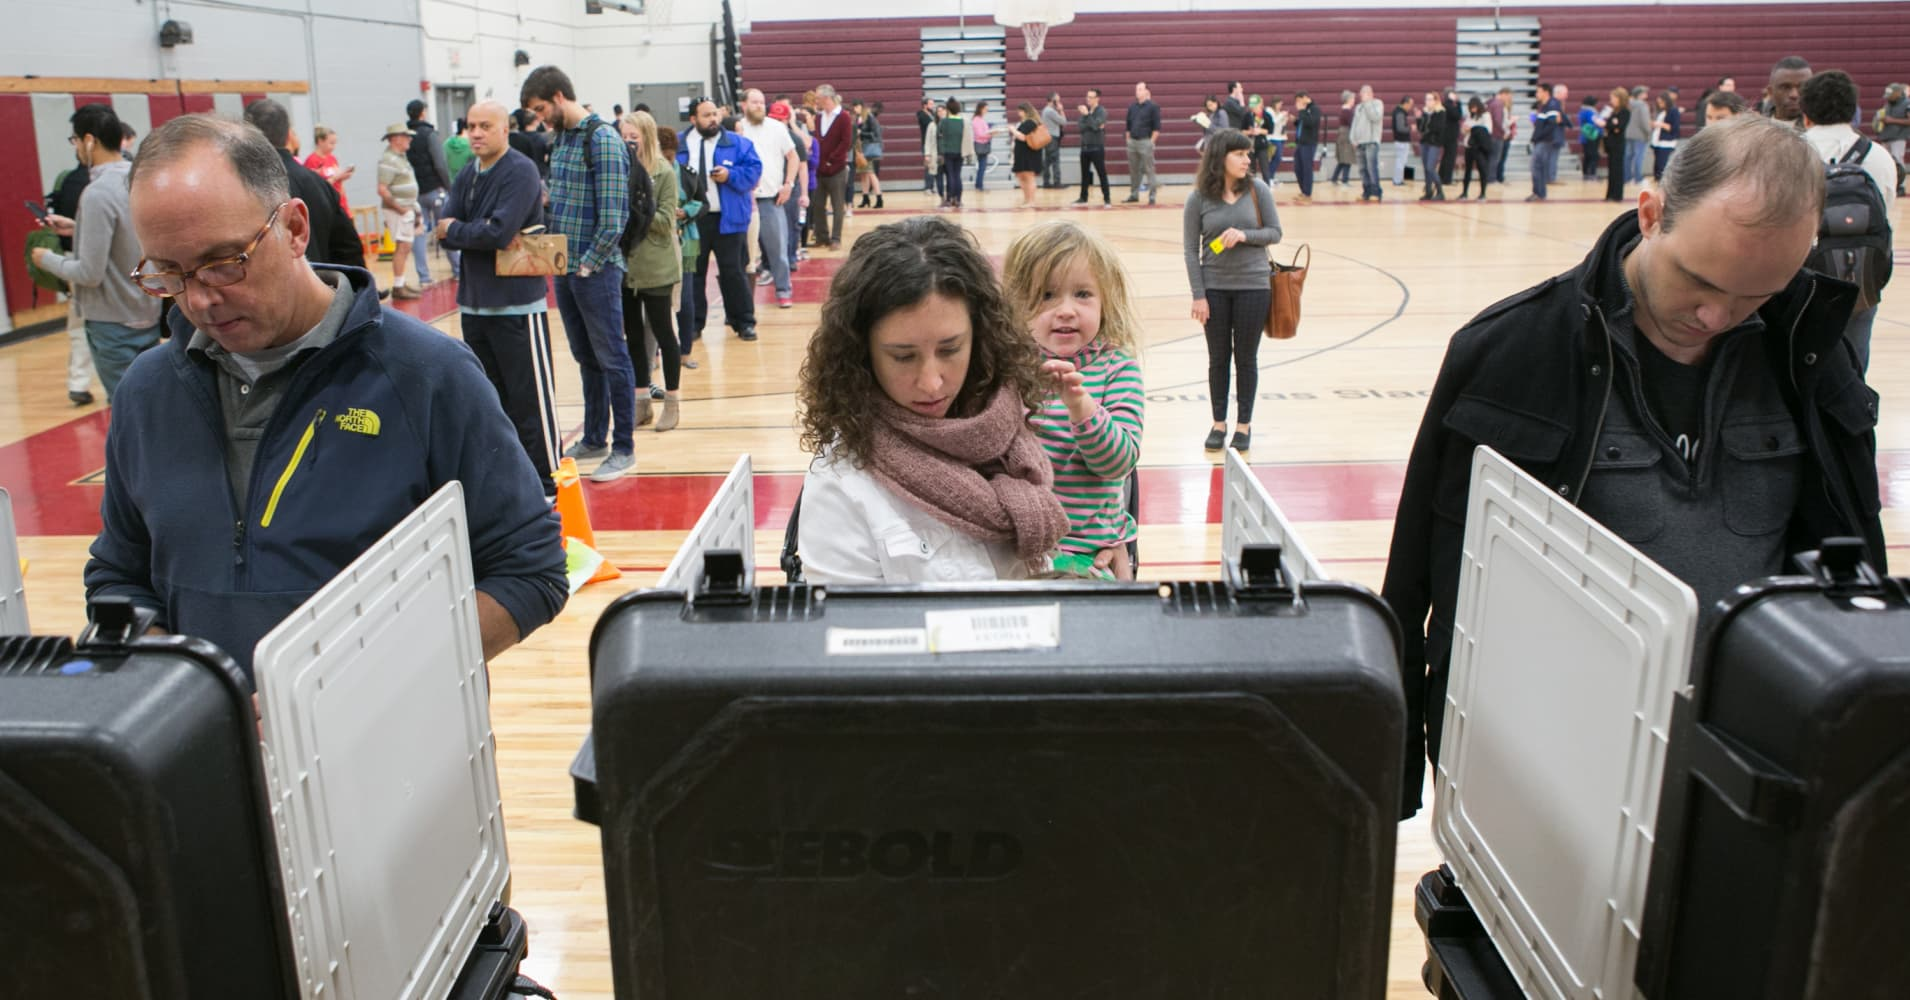 After waiting in line for 1.5 hours, Blake Ashe holds her daughter, Julia, 3, as she casts her ballot on election day November 8, 2016 at Grady High School in Atlanta, Georgia.